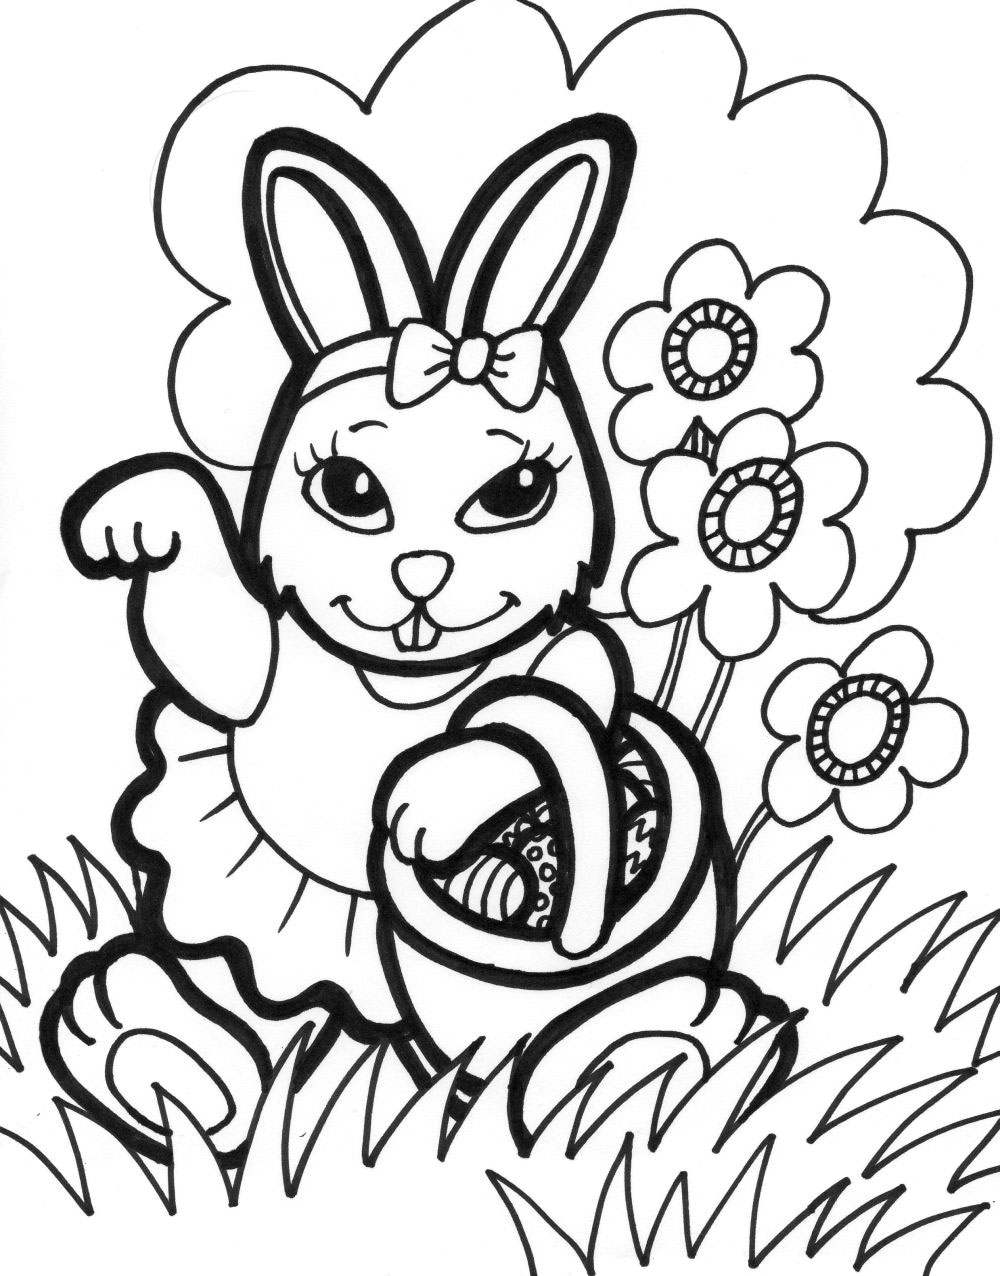 print bunny coloring pages free printable rabbit coloring pages for kids bunny pages coloring print 1 1